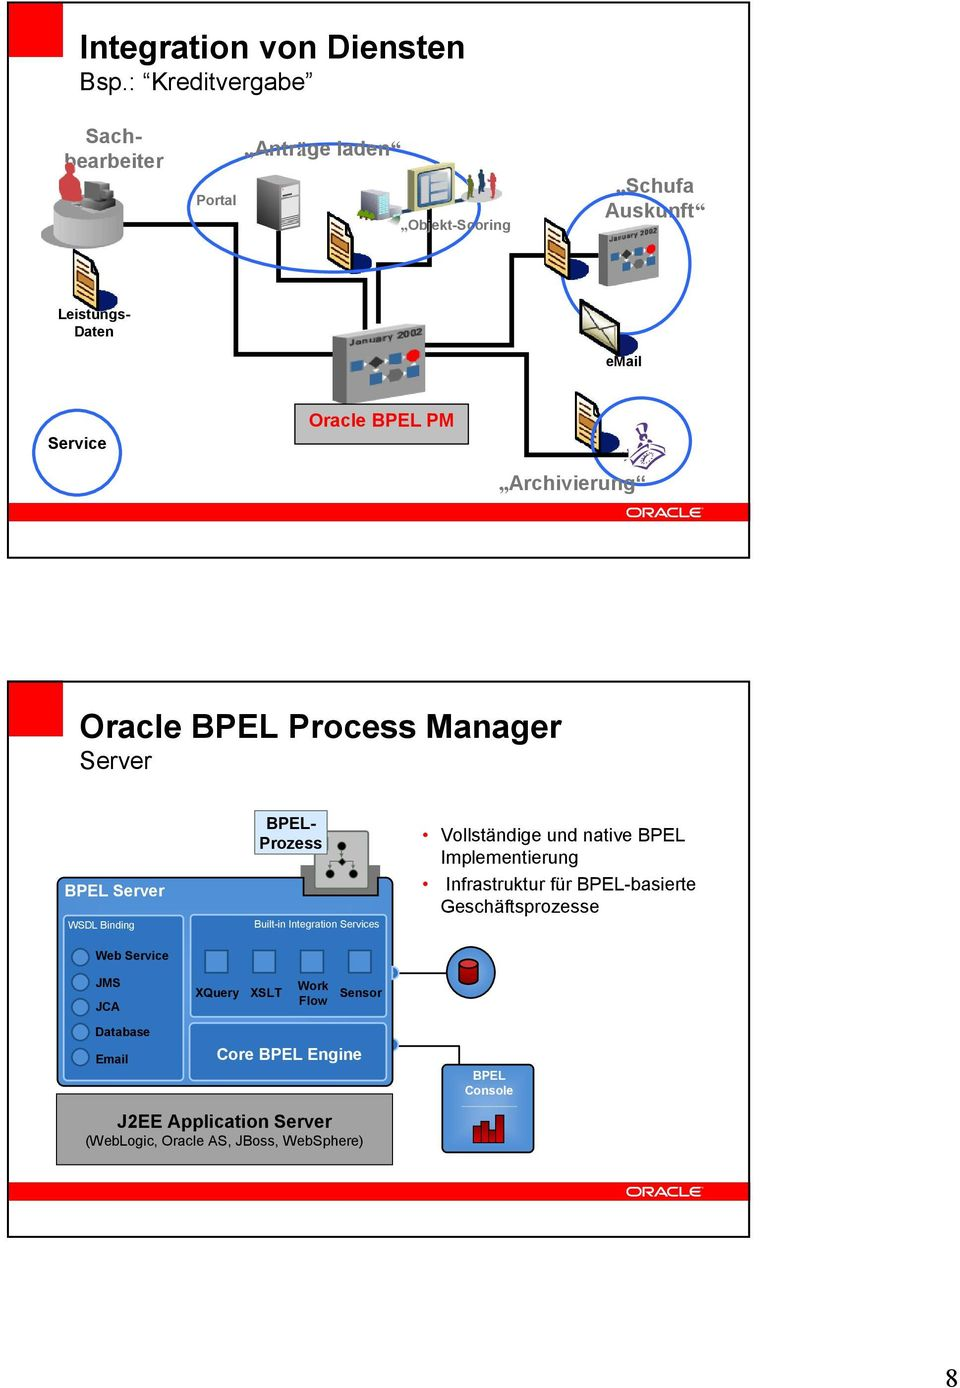 BPEL Process Manager Server BPEL Server WSDL Binding Web Service Sachbearbeiter BPEL- Prozess BPEL Built-in Integration Services